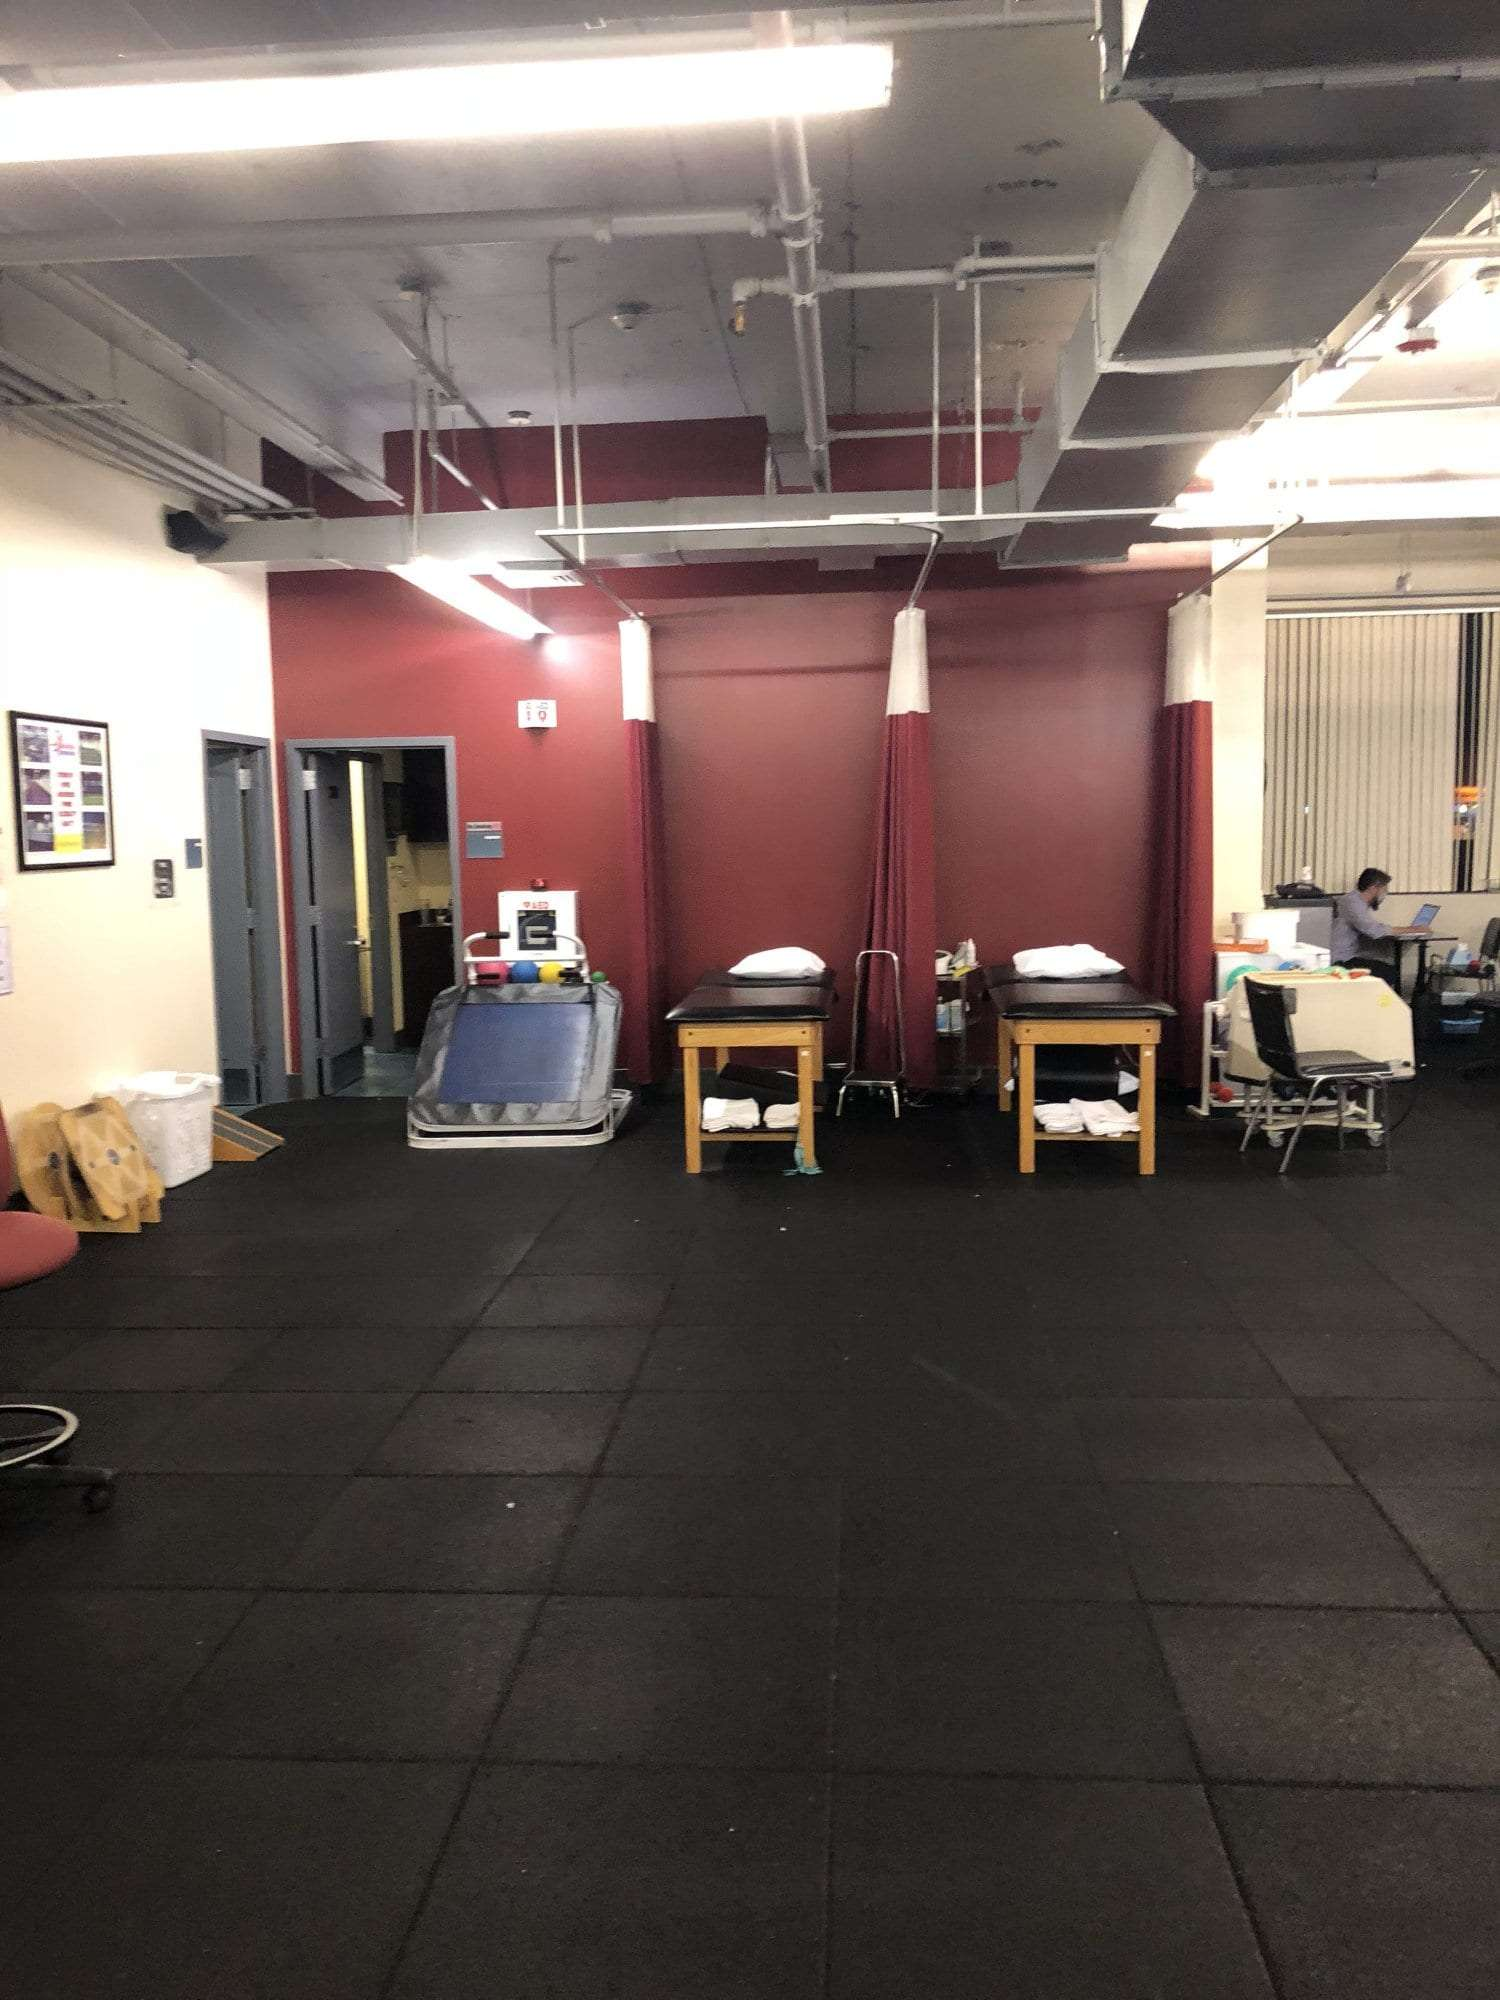 An image of our training room at our physical therapy clinic in Melville, Long Island in Suffolk County, New York.